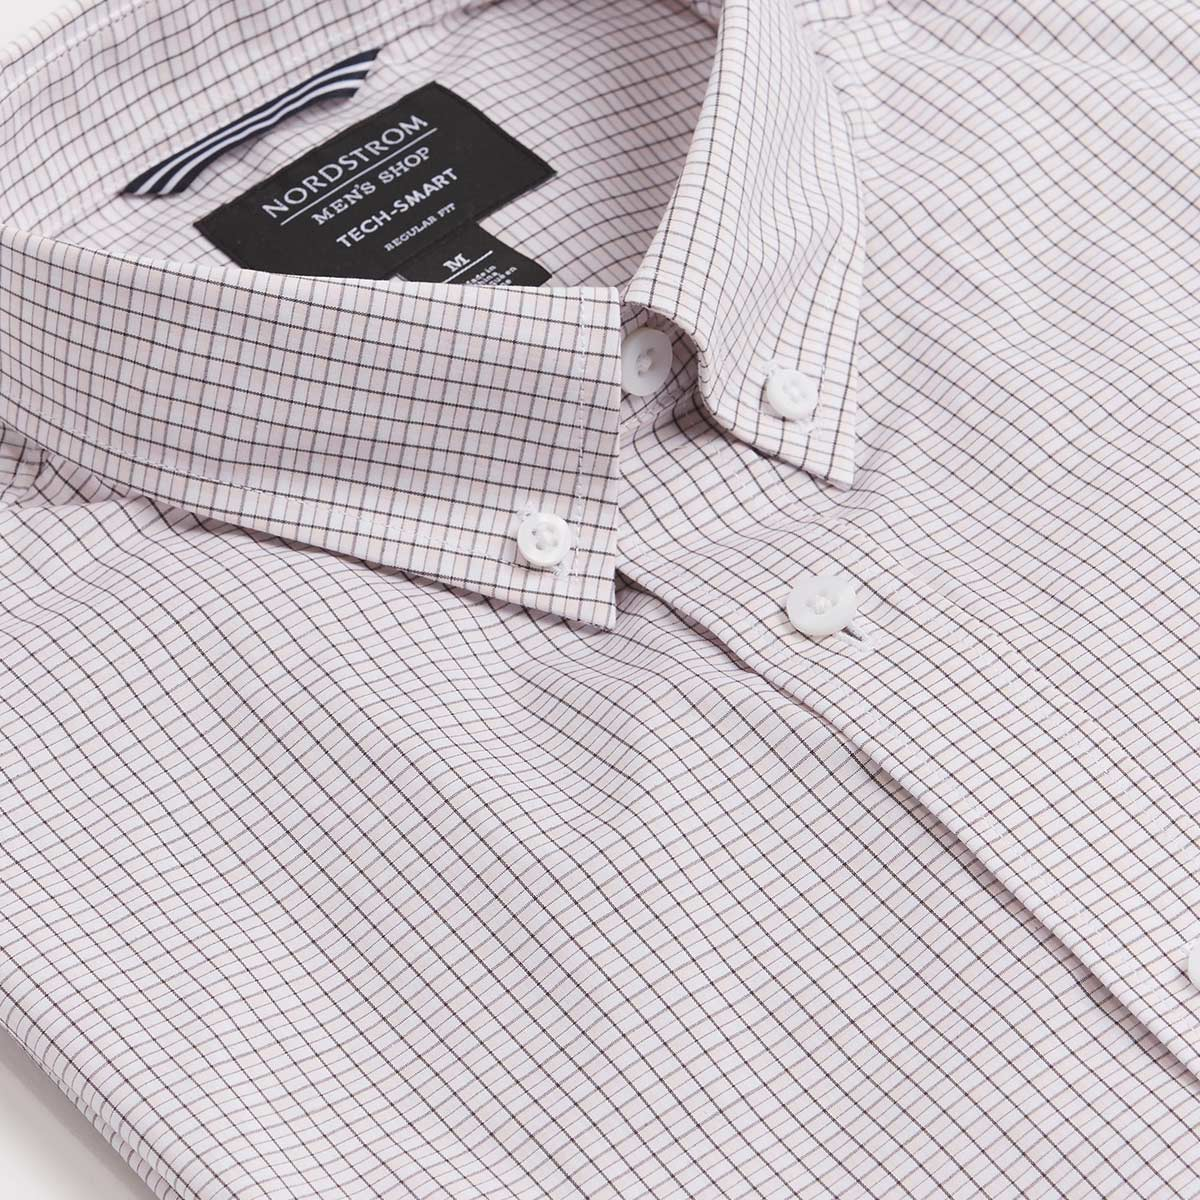 Pink and white striped shirt folded neatly to show off crisp collar, Nordstrom tag and button details.